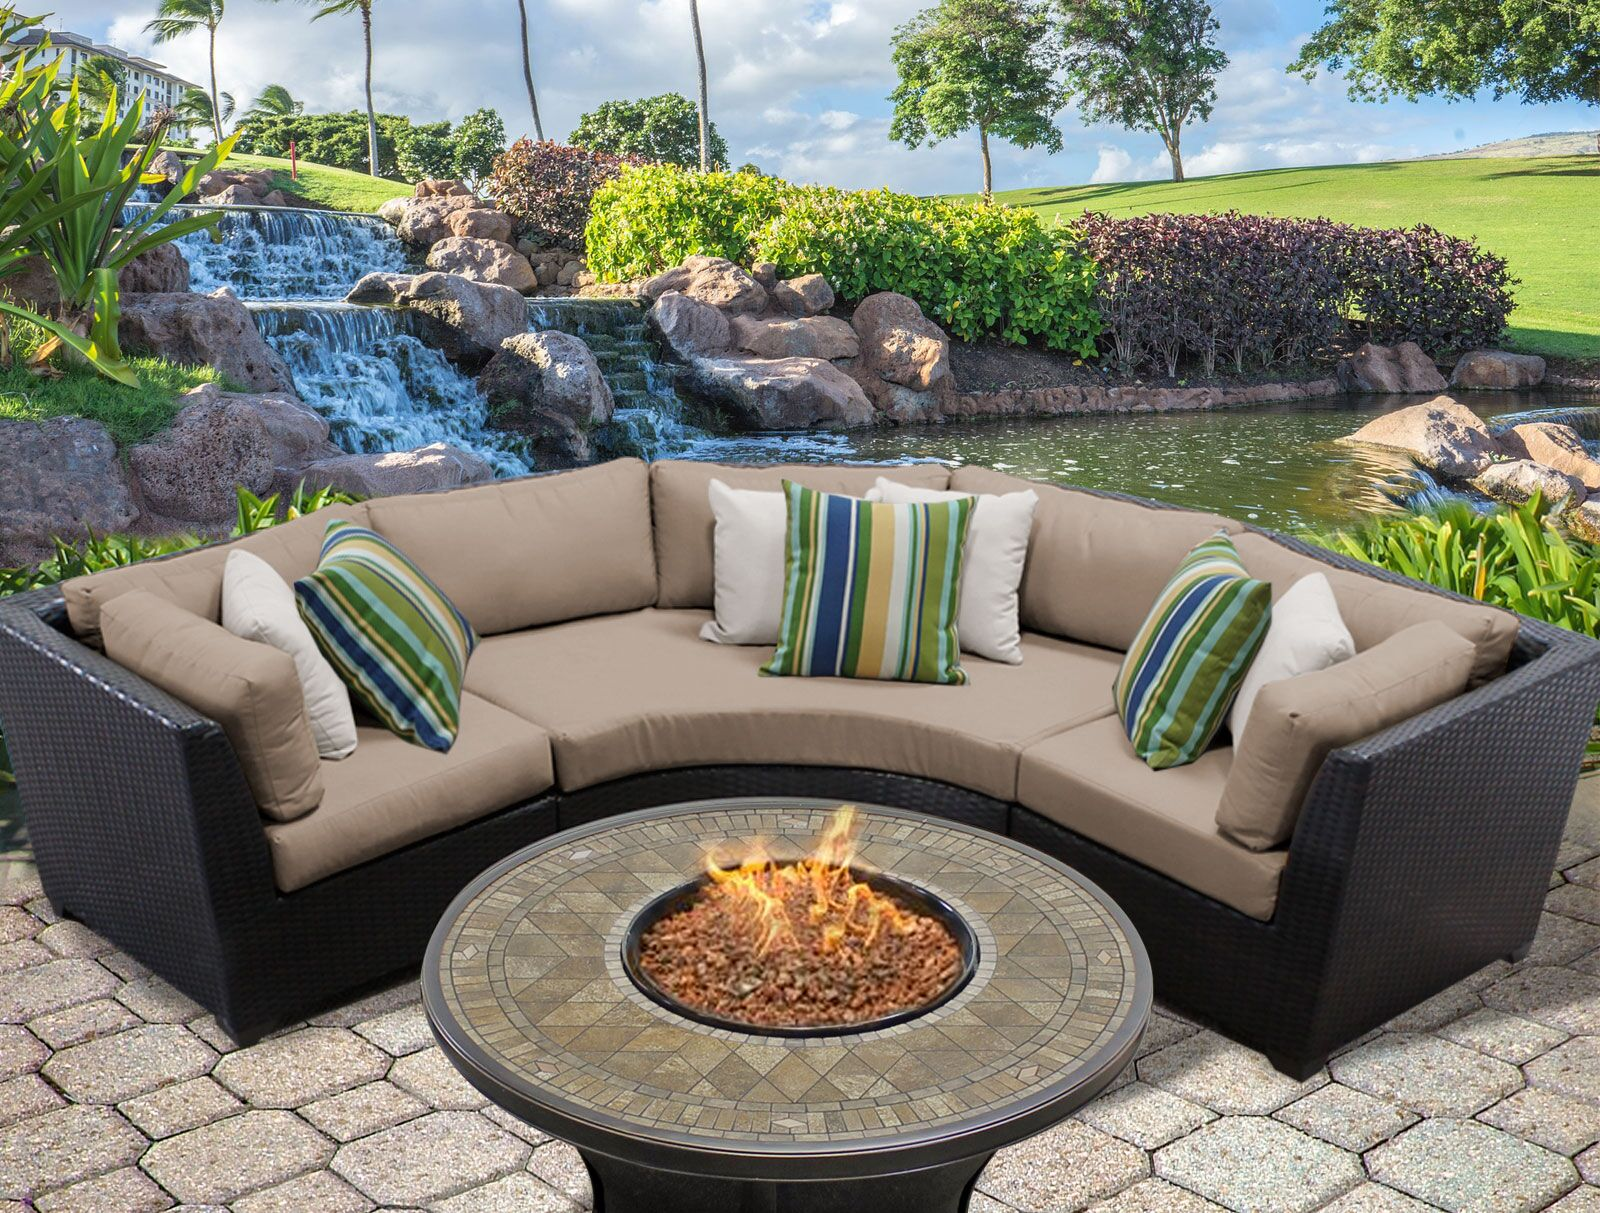 Barbados 4 Piece Sectional Set with Cushions Color: Wheat